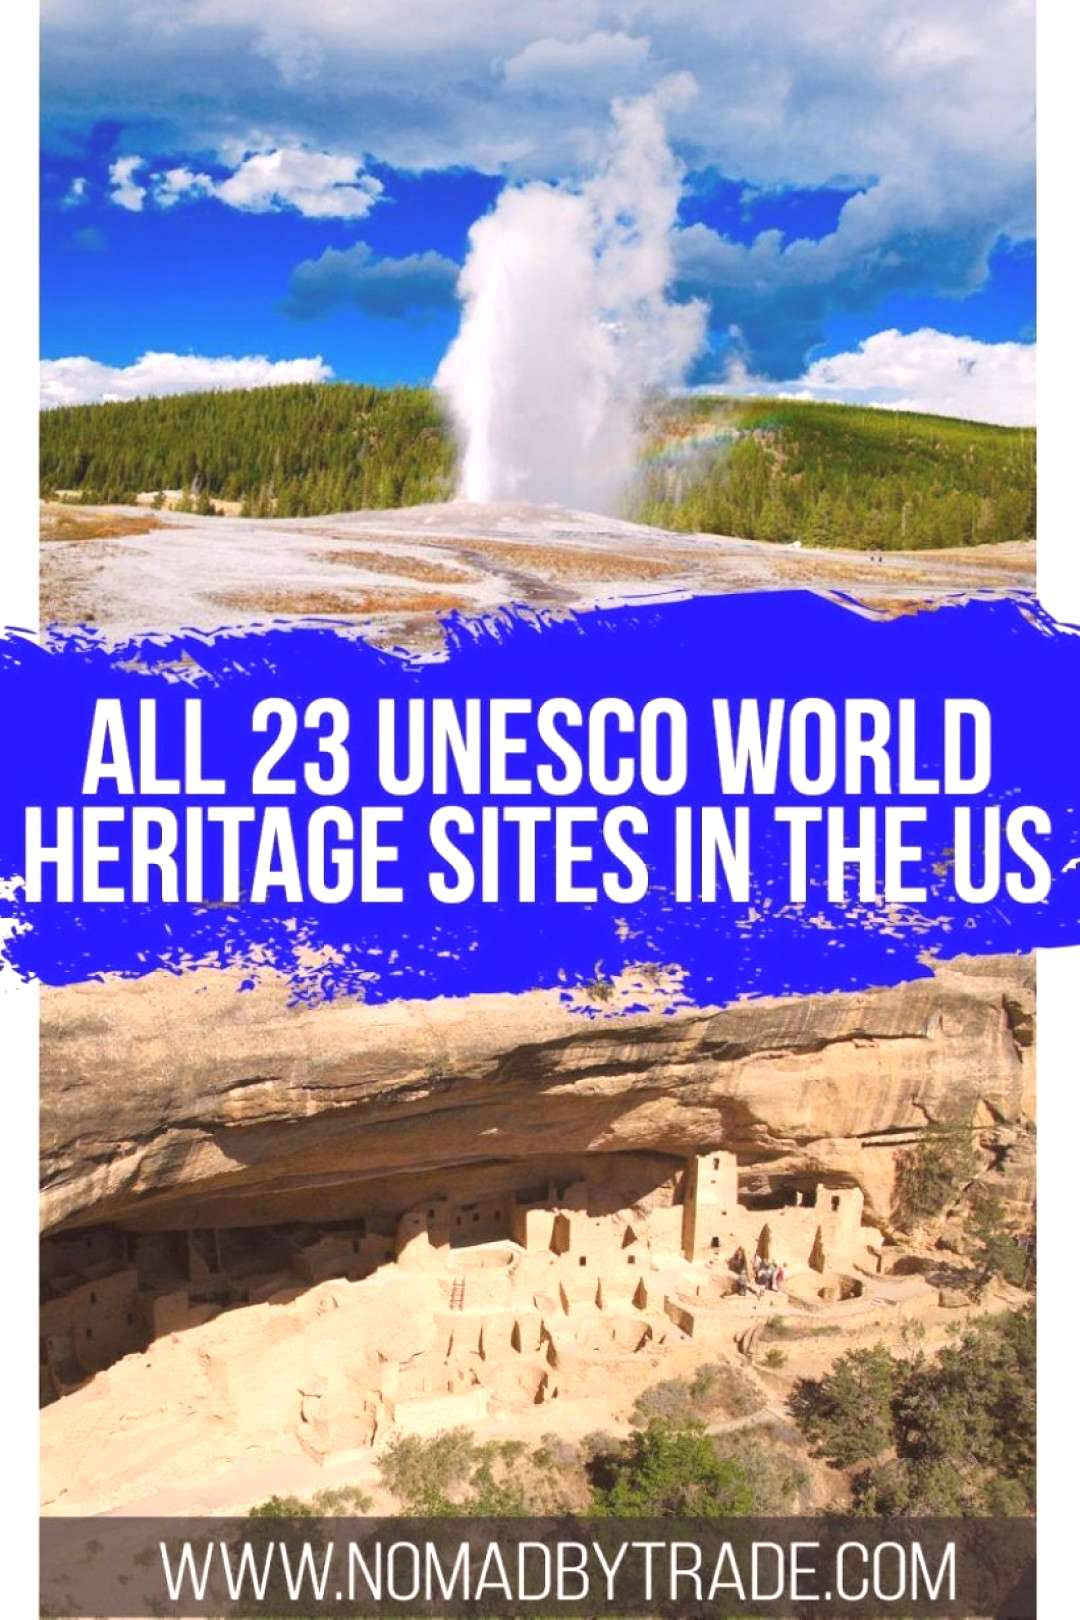 There are 24 UNESCO World Heritage Sites in the United States recognizing cultural and natural heri